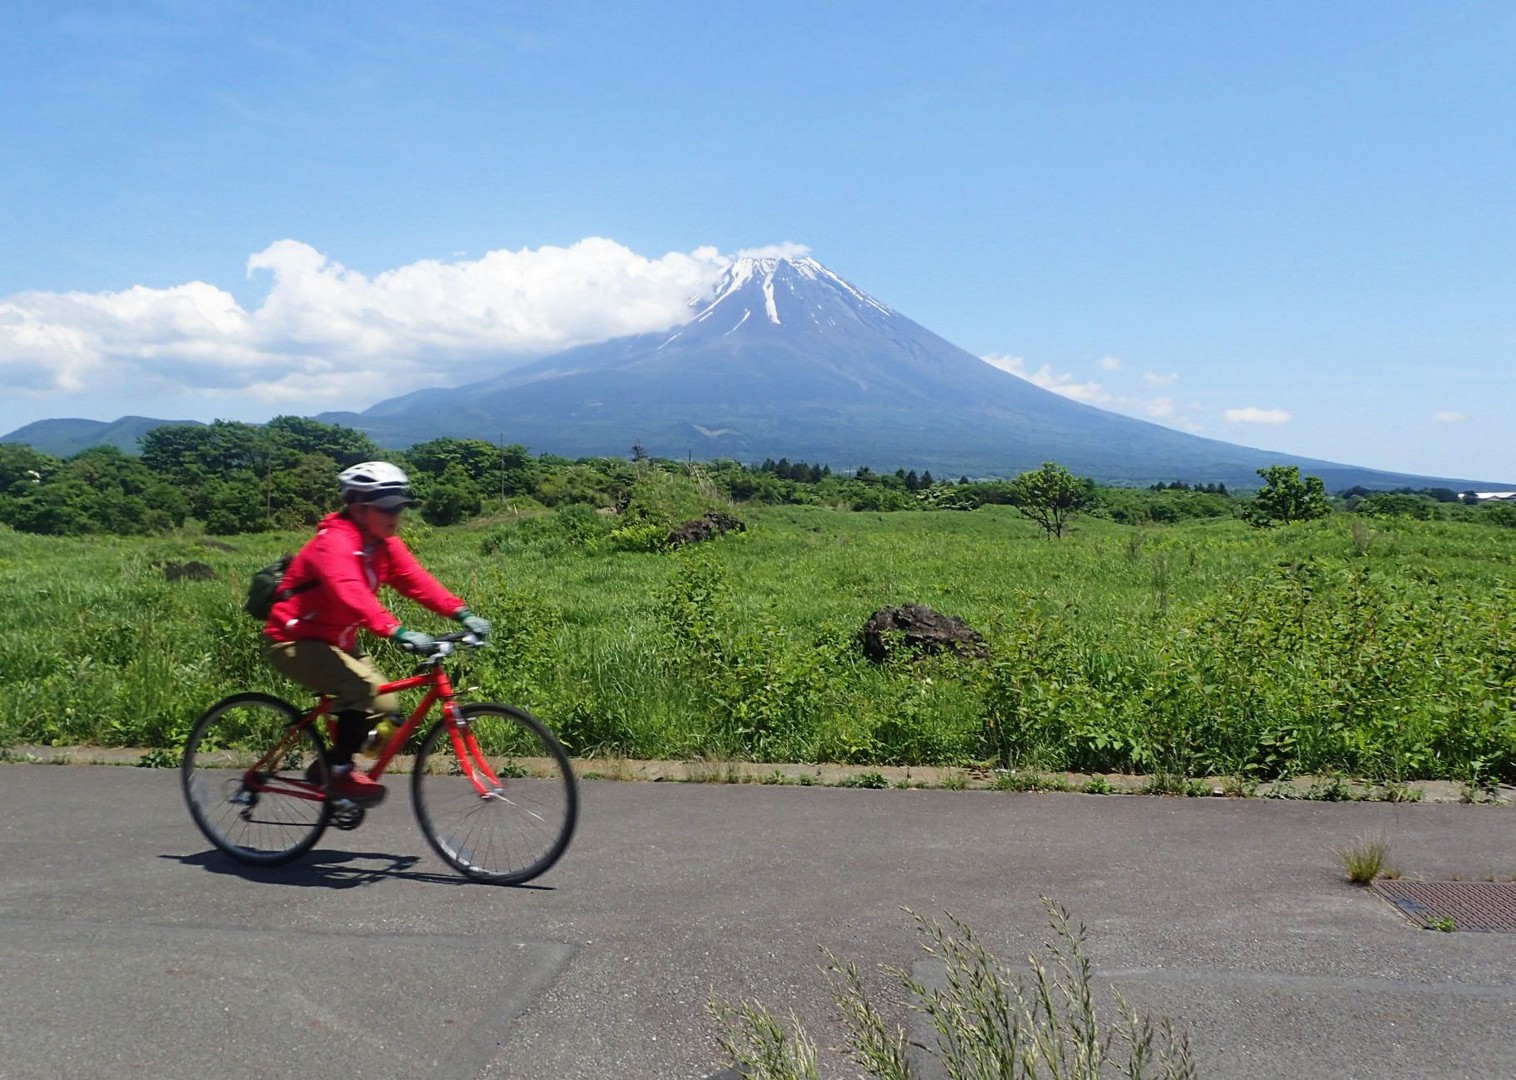 fuji-to-kyoto-cycling-holiday.JPG - Japan - Classic Japan - Fuji to Kyoto - Cycling Holiday - Cycling Adventures